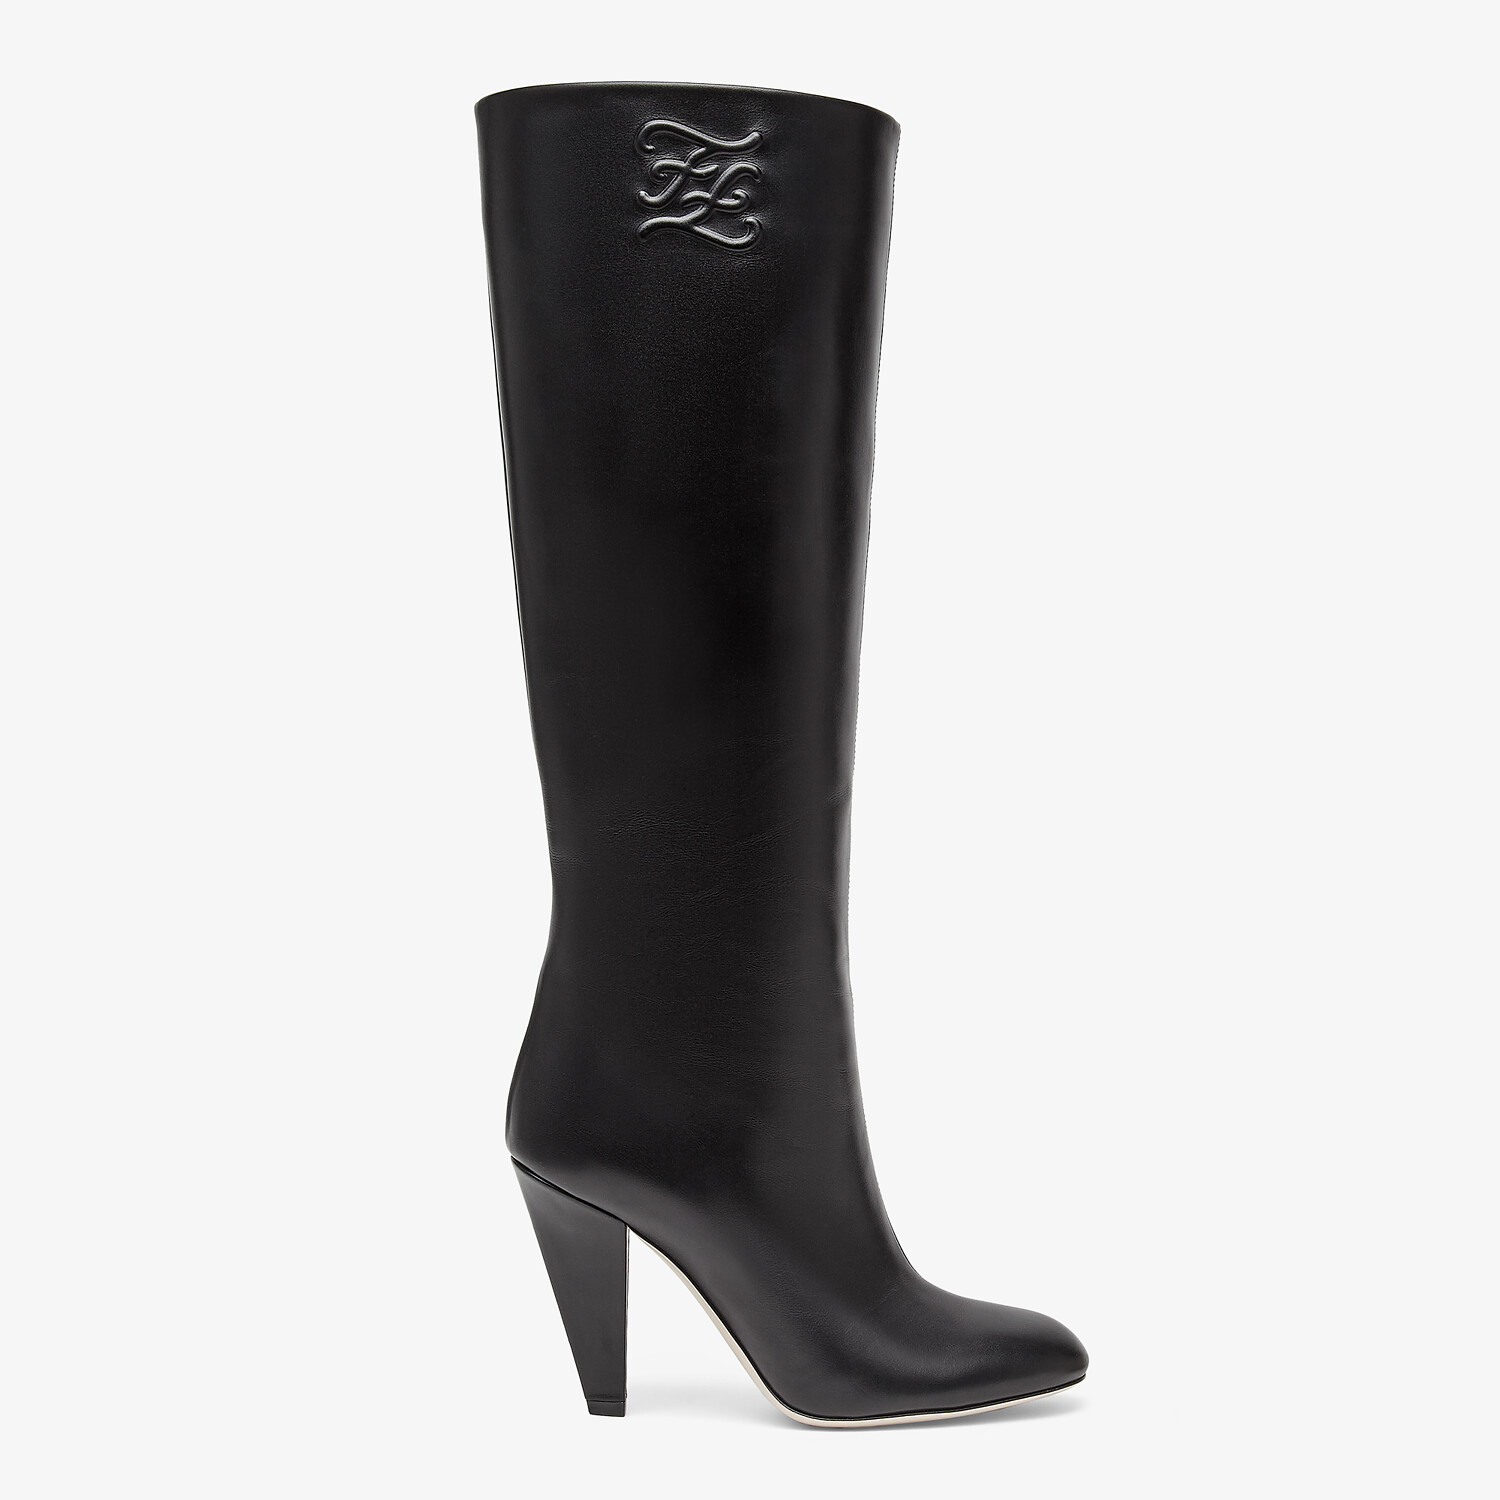 FENDI KARLIGRAPHY - Black leather, high-heeled boots - view 1 detail